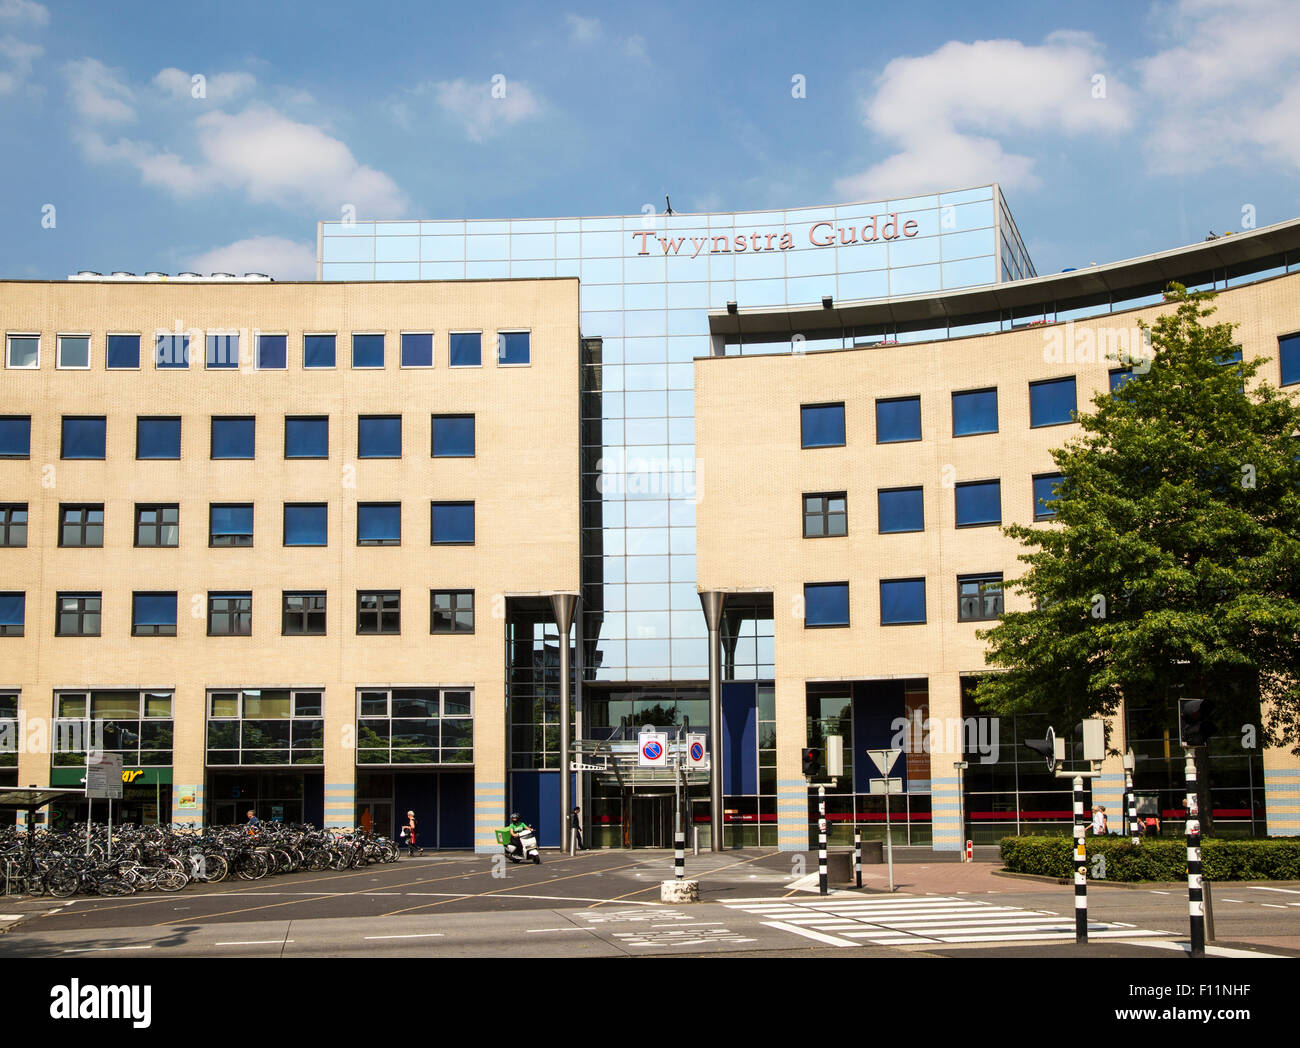 Modern architecture Twynstra Gudde management consultants offices, Amersfoort, Netherlands - Stock Image